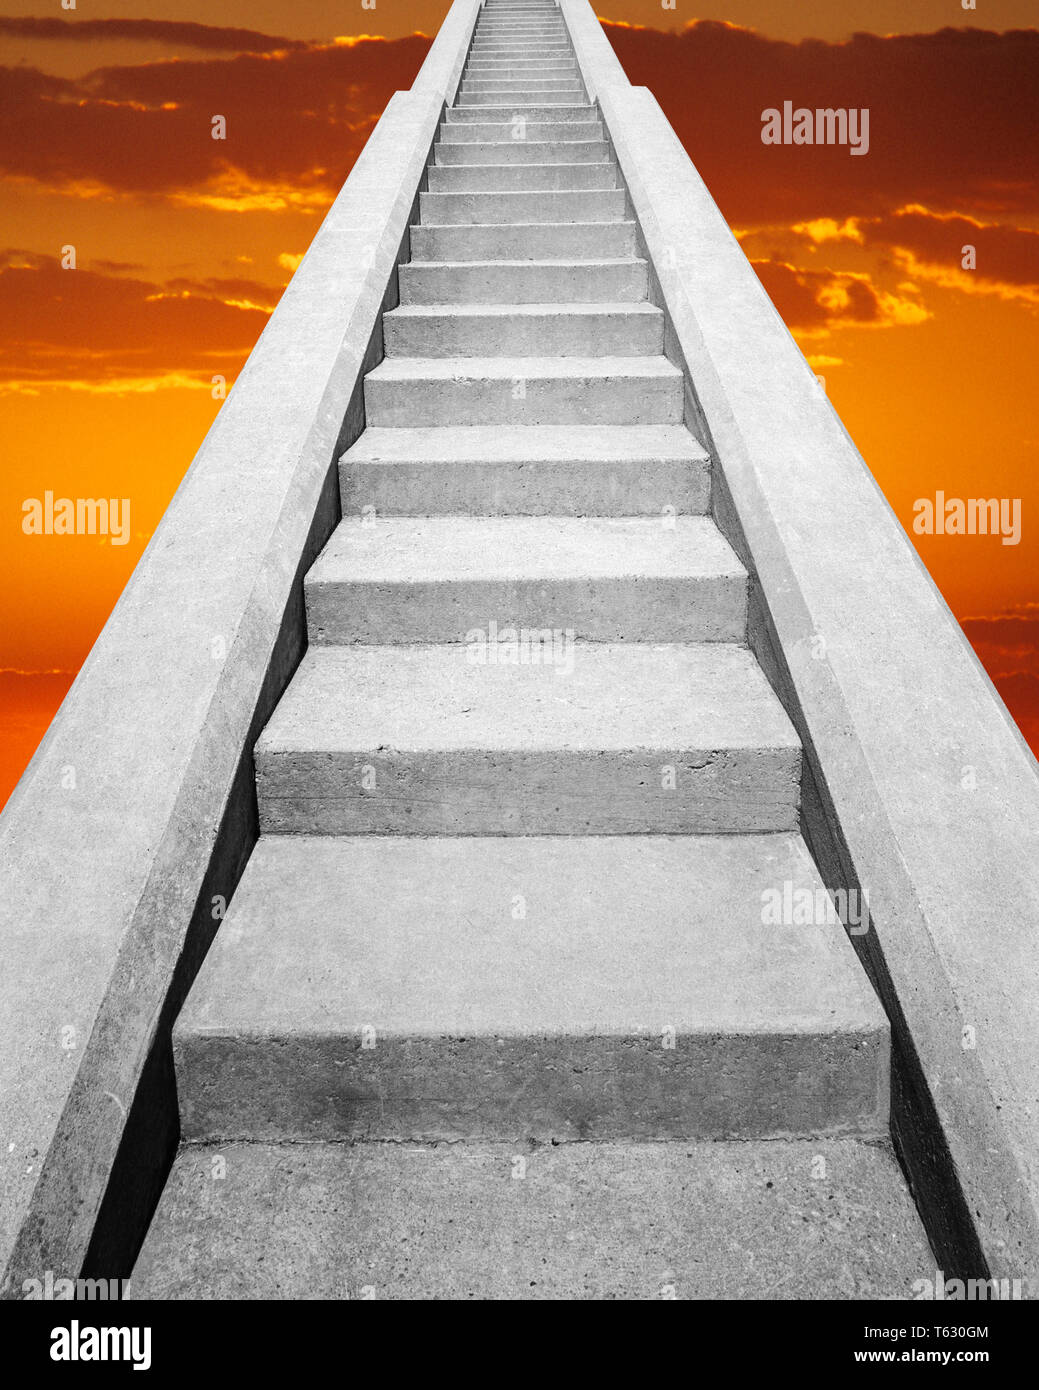 VIEW AT BOTTOM OF SET OF CONCRETE STAIRS  LOOKING UP INTO THE SKY THE HEAVENS SUNSET - s14723g HAR001 HARS HEAVENS CHOICE COMPOSITE EXTERIOR LOW ANGLE STAIR DIRECTION HEAVEN UP STAIRCASE STAIRWAY CONCEPT CONNECTION CONCEPTUAL STILL LIFE PARADISE STEEP FAITHFUL SYMBOLIC CONCEPTS FAITH IDEAS LOOKING  UP REWARD BELIEF CONCRETE HAR001 OLD FASHIONED REPRESENTATION - Stock Image